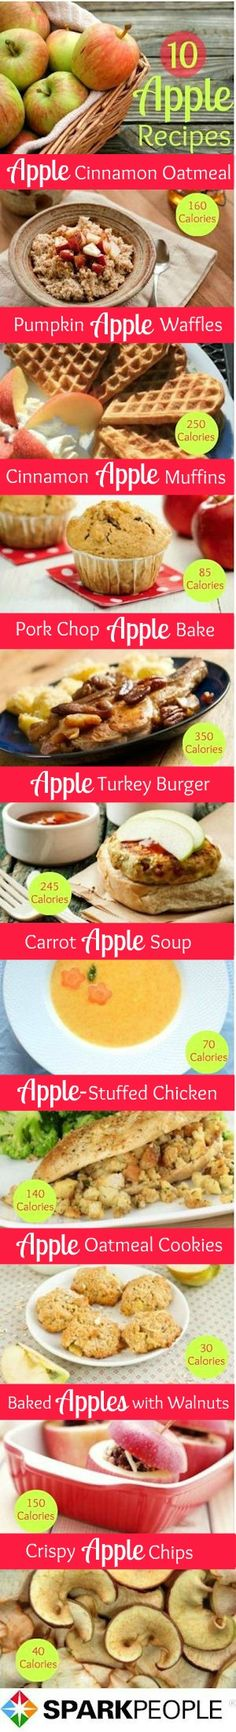 Easy and #healthy #apple #recipes for #fall!! | via @SparkPeople #healthyrecipes #apples #healthyeating